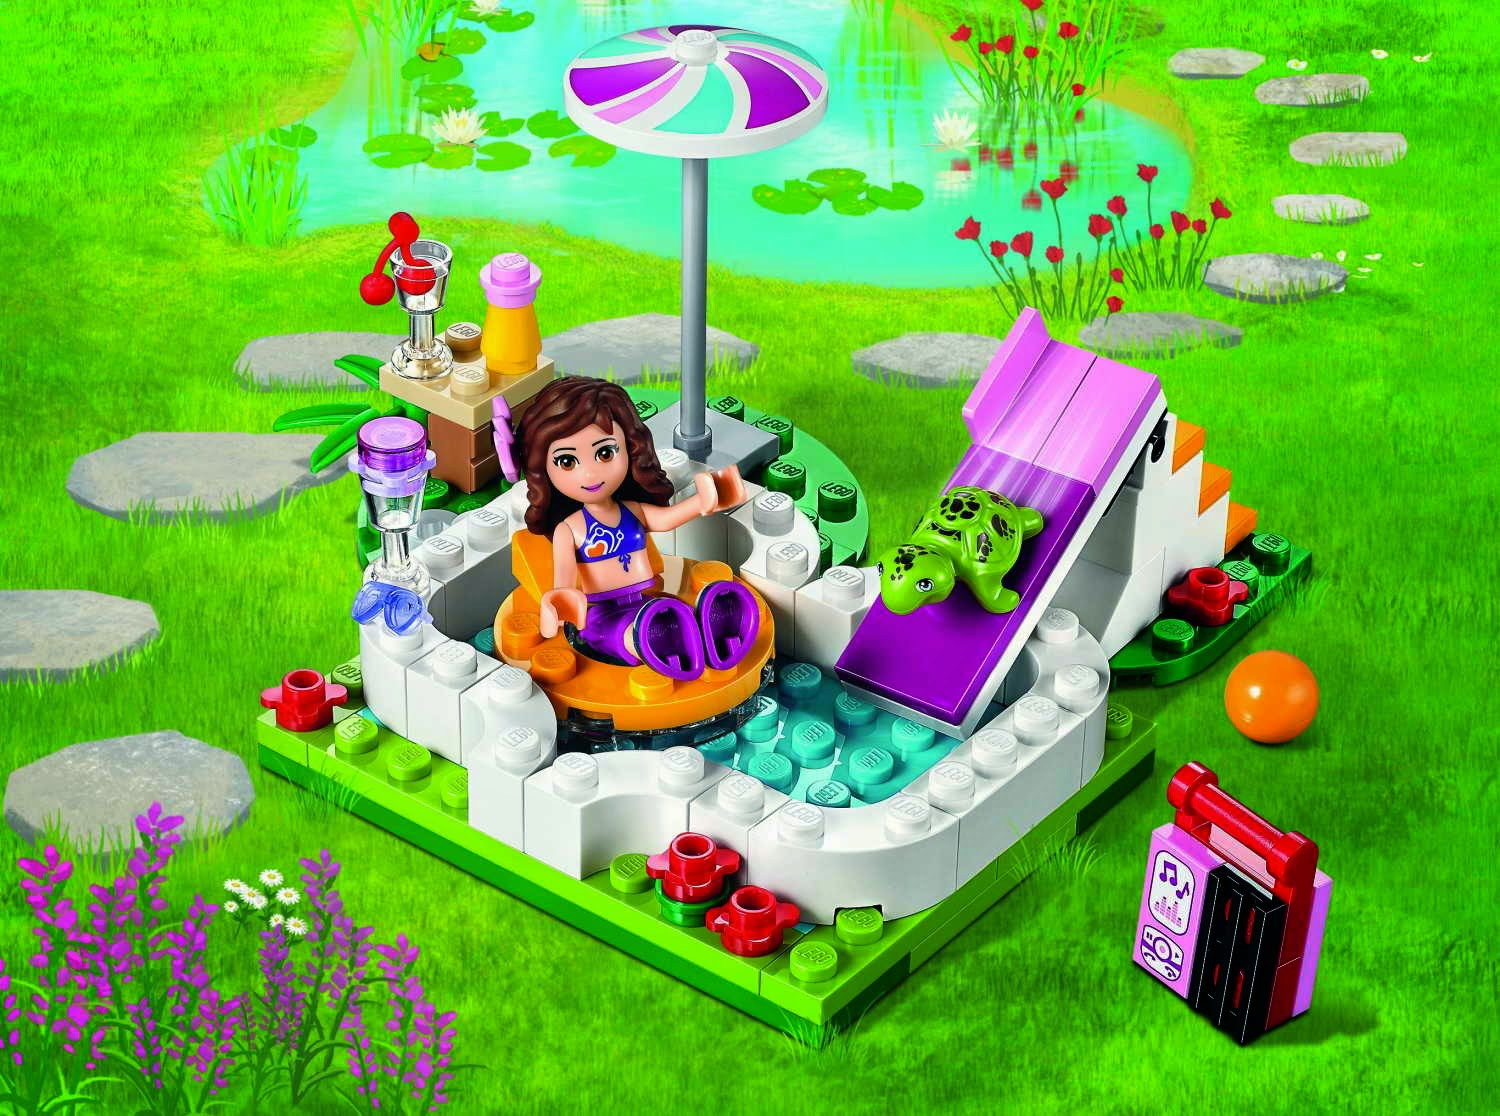 Lego Friends Olivia's Zwembad 41090 Brick Friends Lego 41090 Olivia 39s Garden Pool